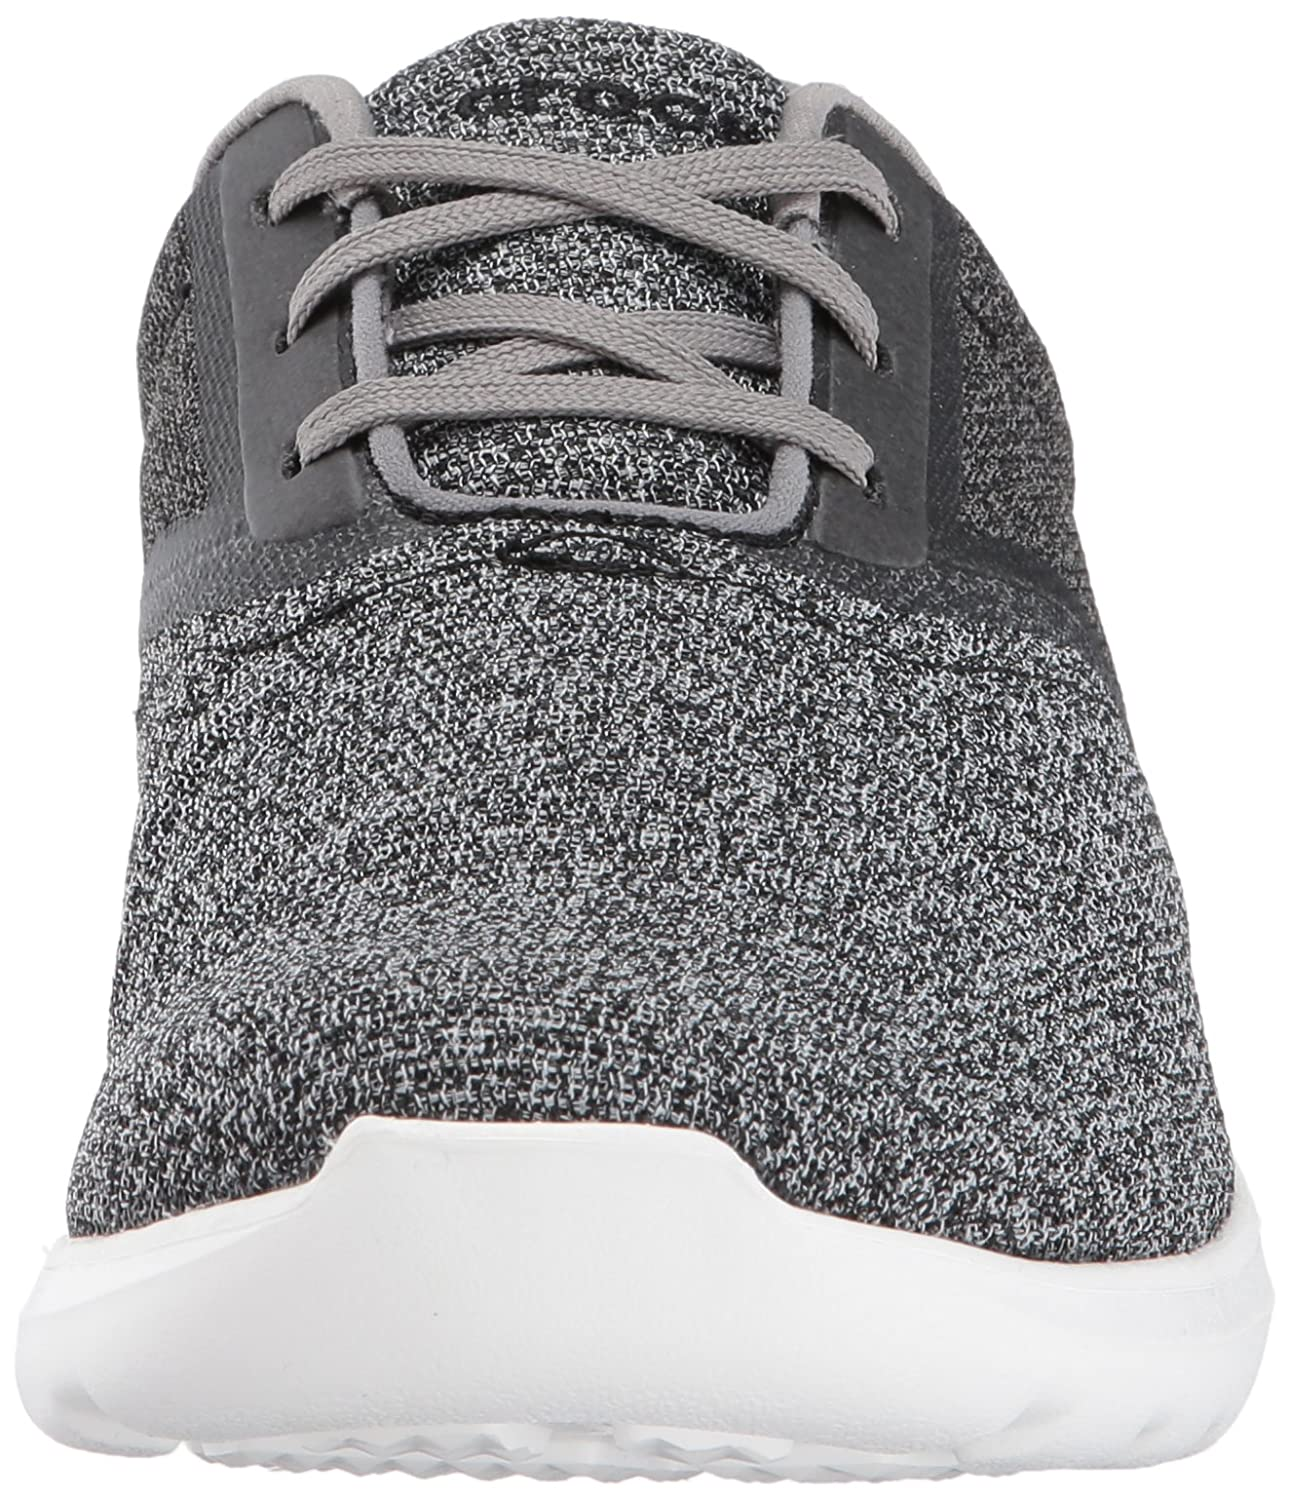 e1b2bafa4e4e84 crocs Men s Kinsale Static Lace M Sneakers  Buy Online at Low Prices in  India - Amazon.in